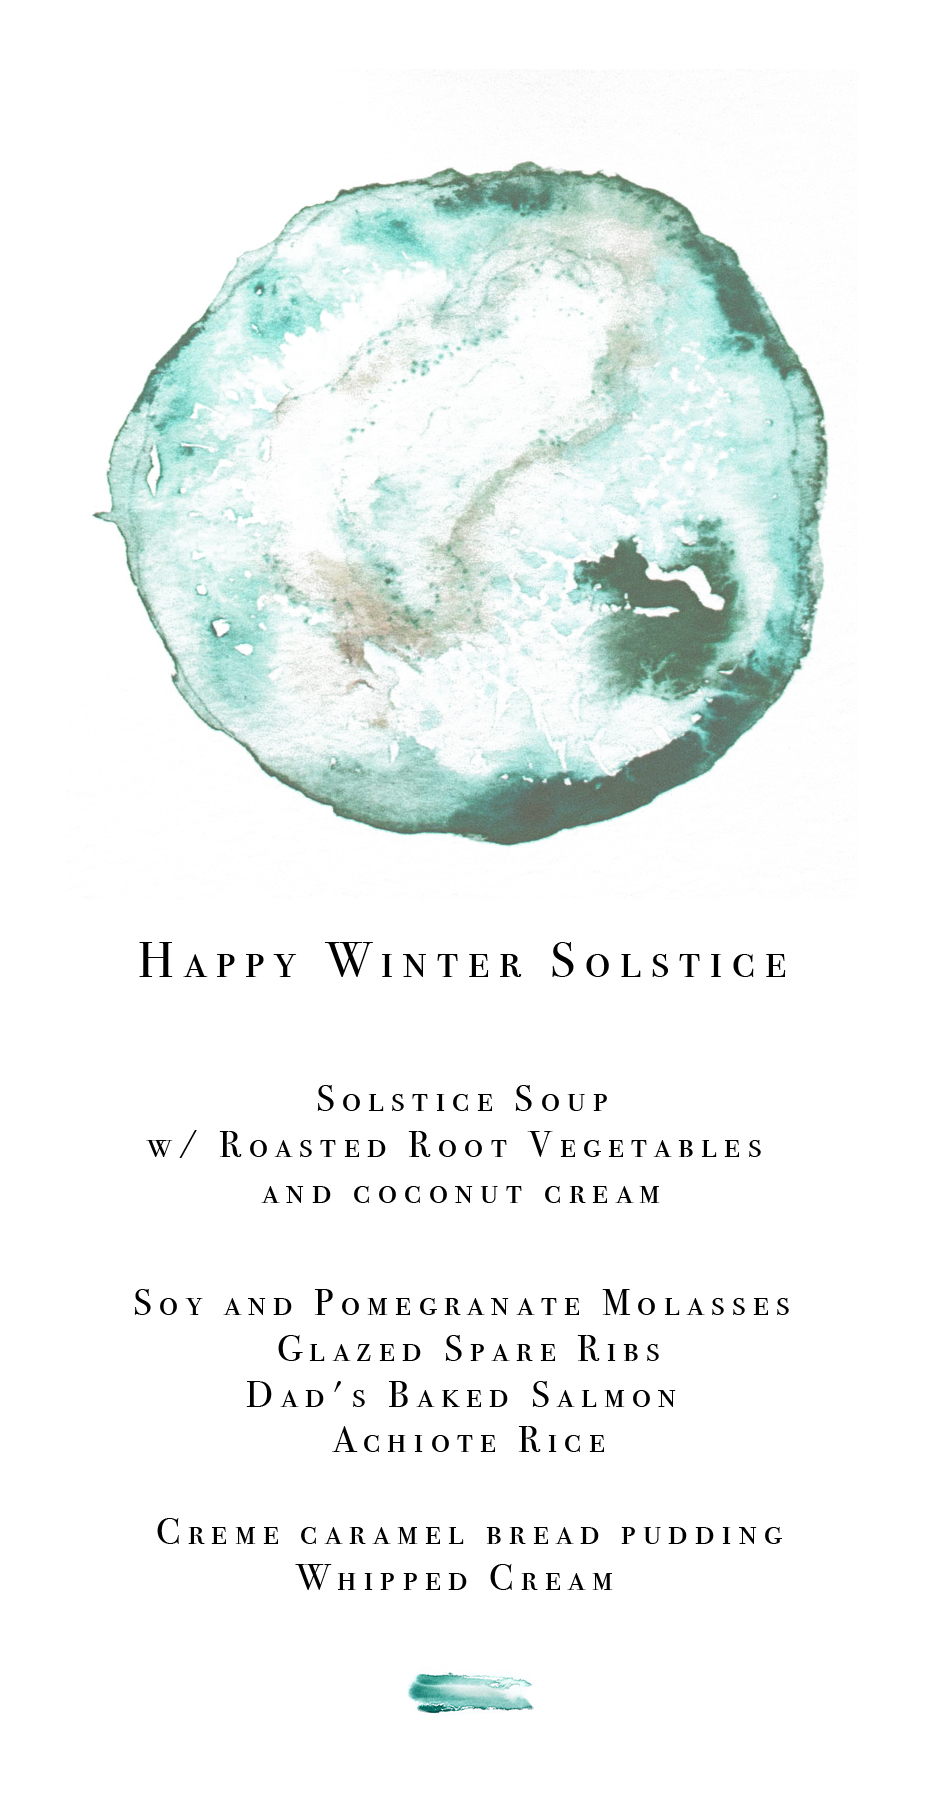 happy winter solstice menu template download the eternal child